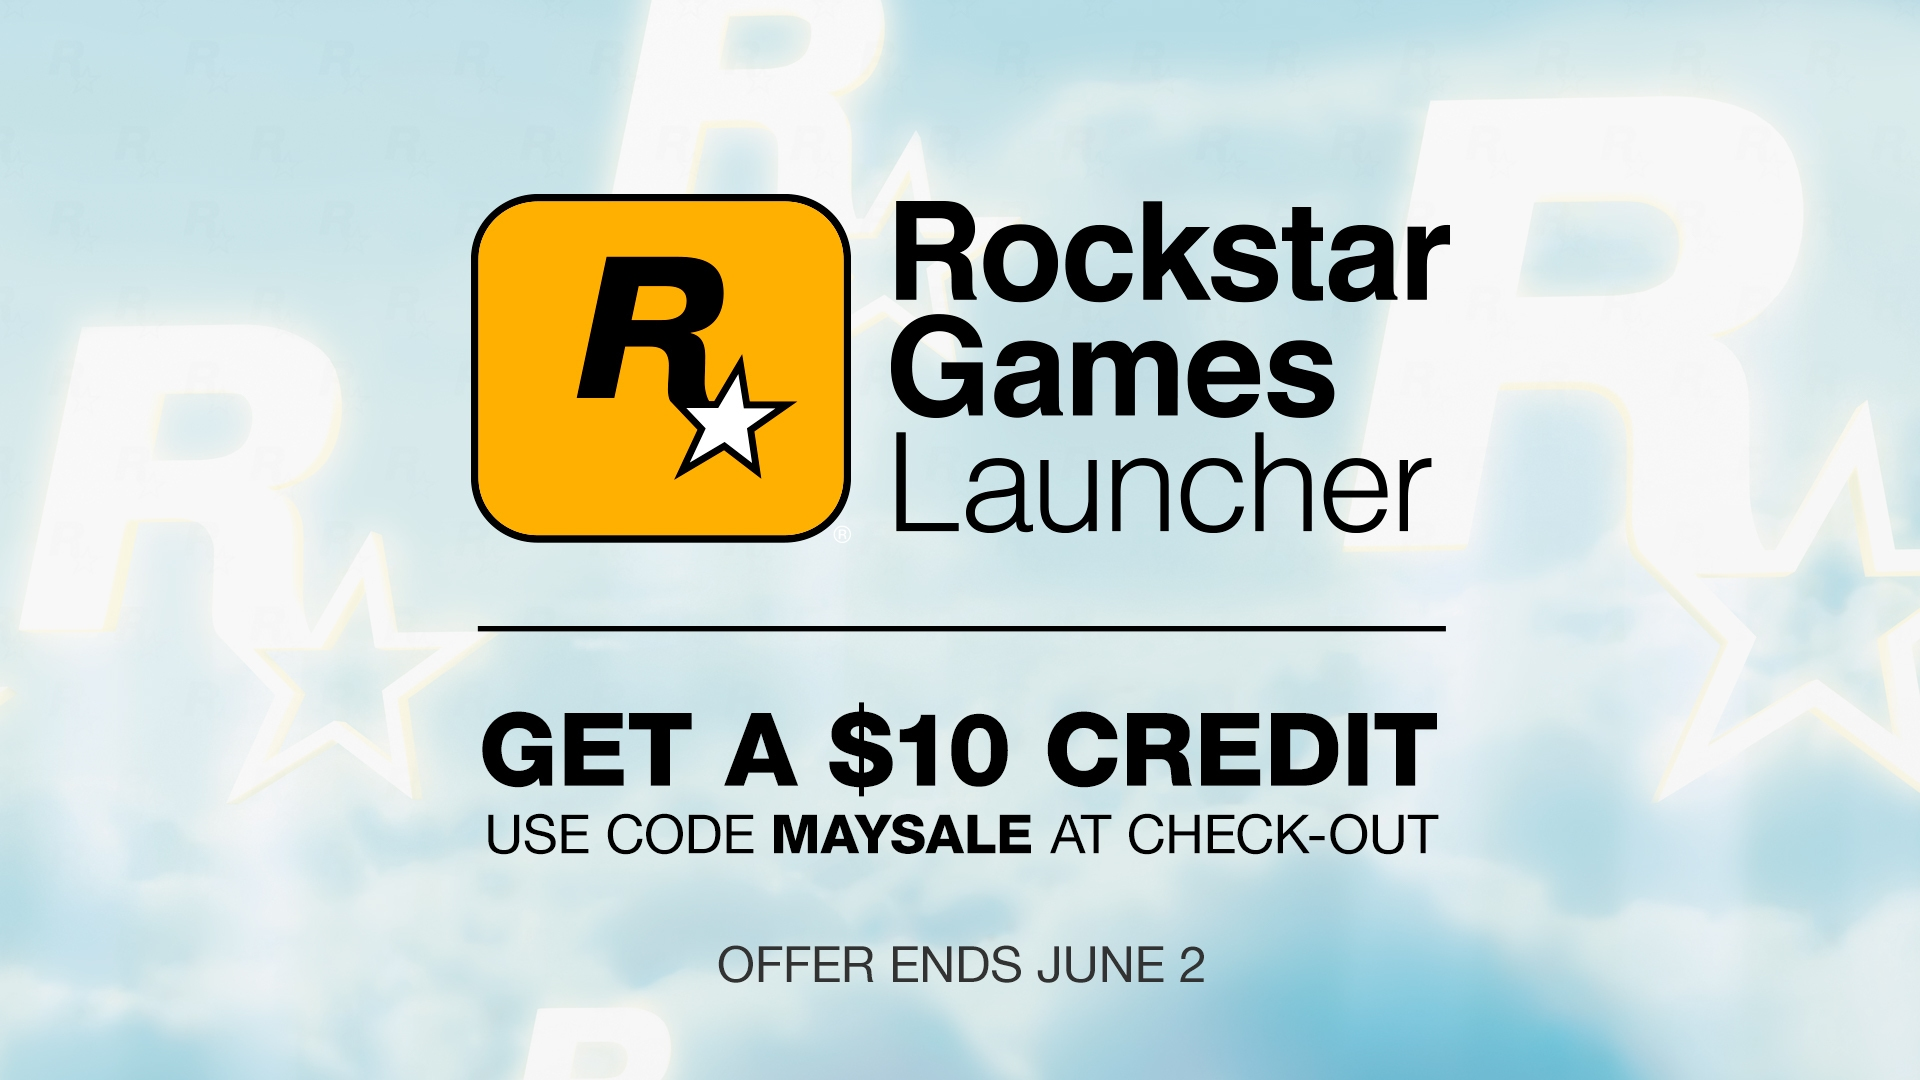 Get a $10 Credit on the Rockstar Games Launcher